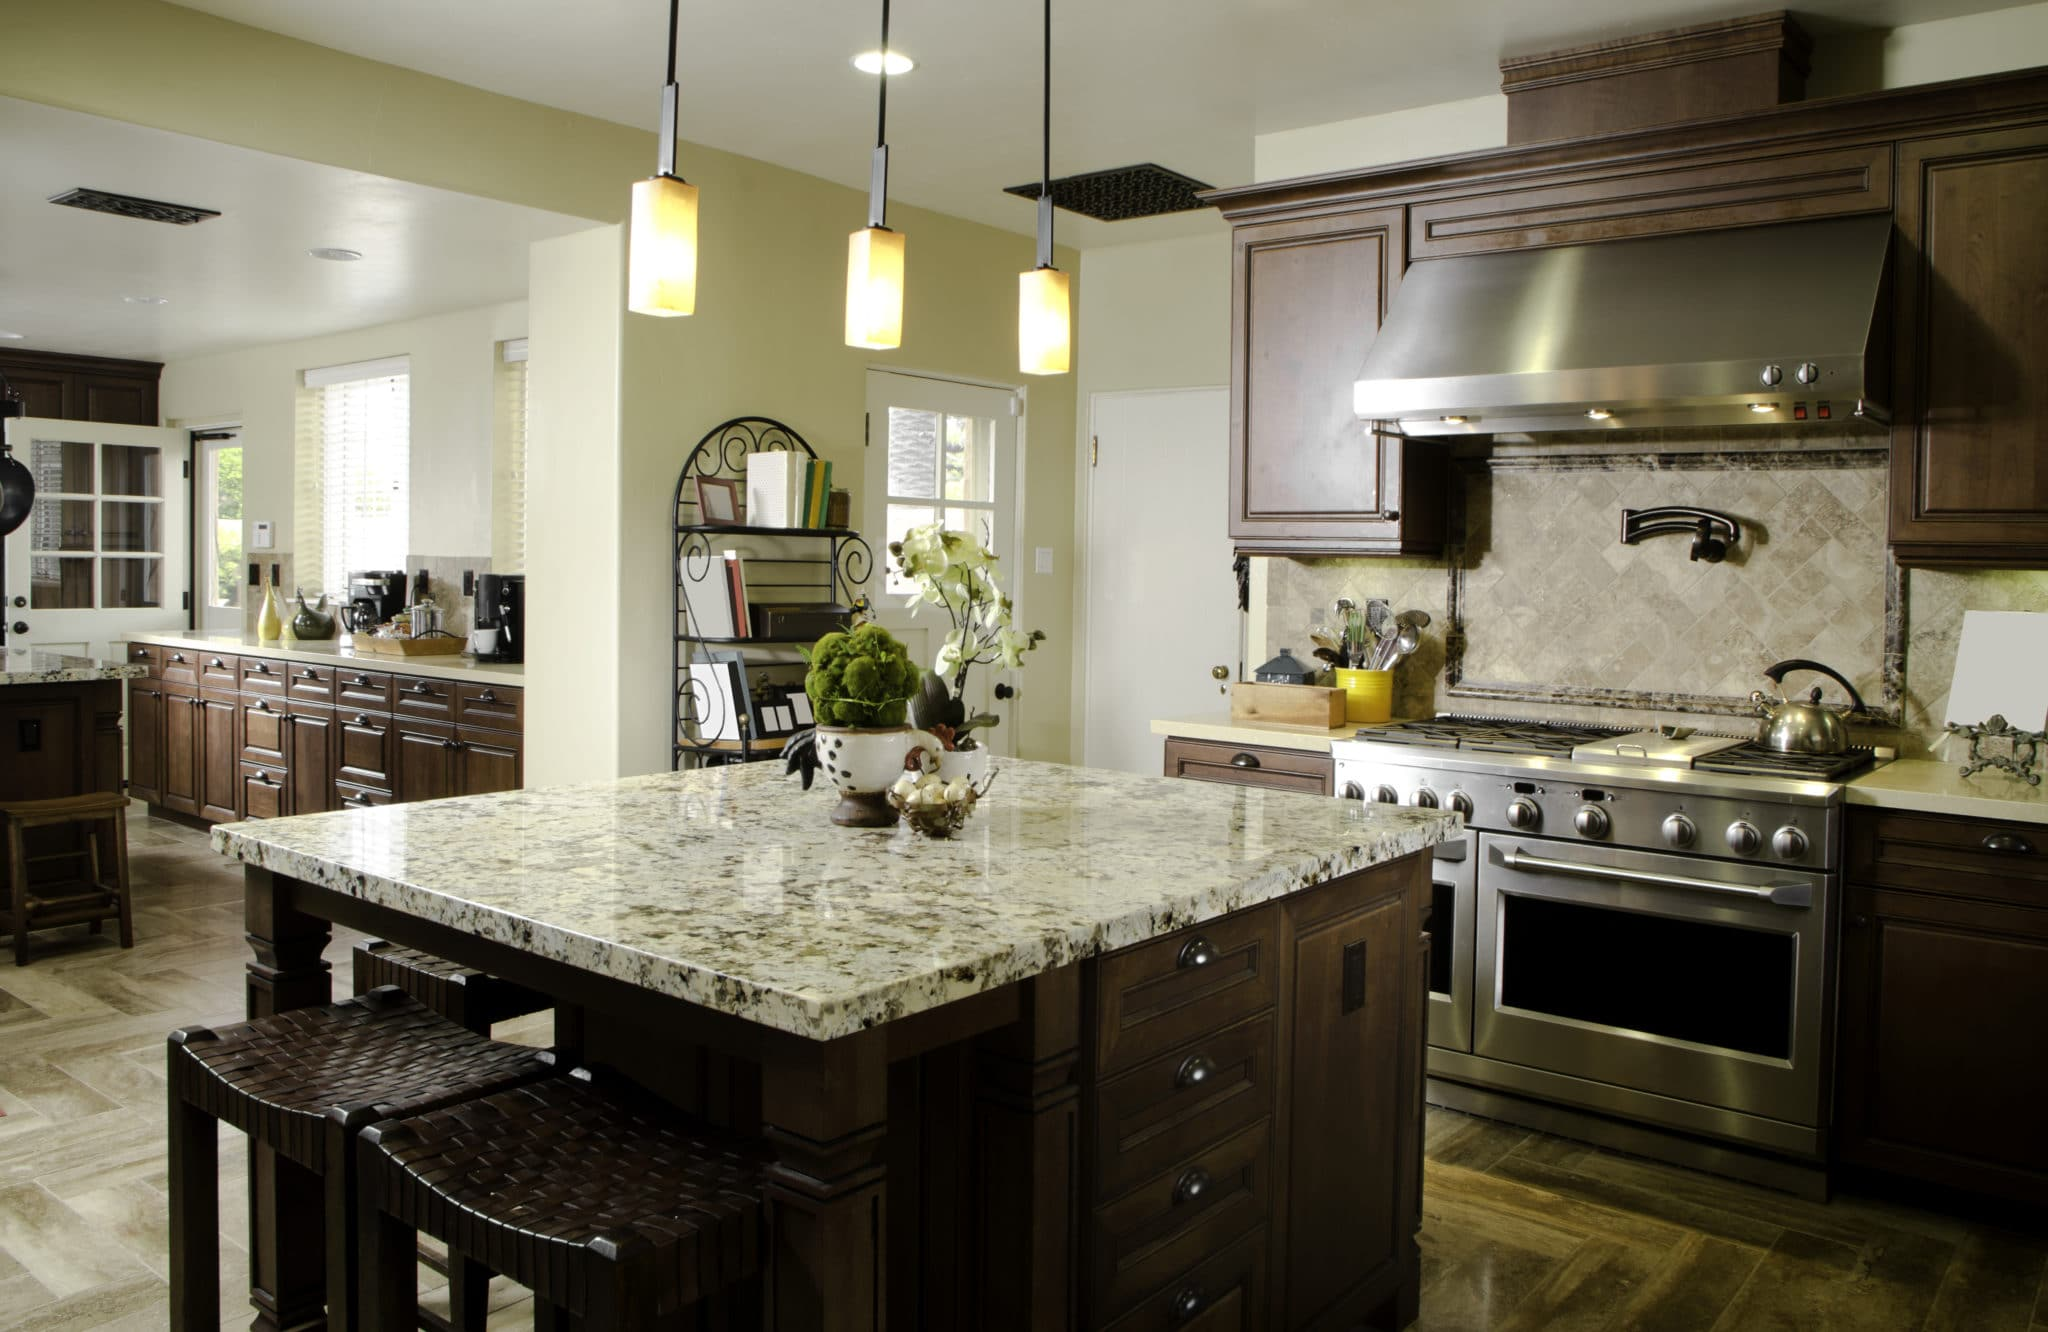 remodeling kitchen remodel contractors Riverside County CA Kitchen Remodeling Contractor